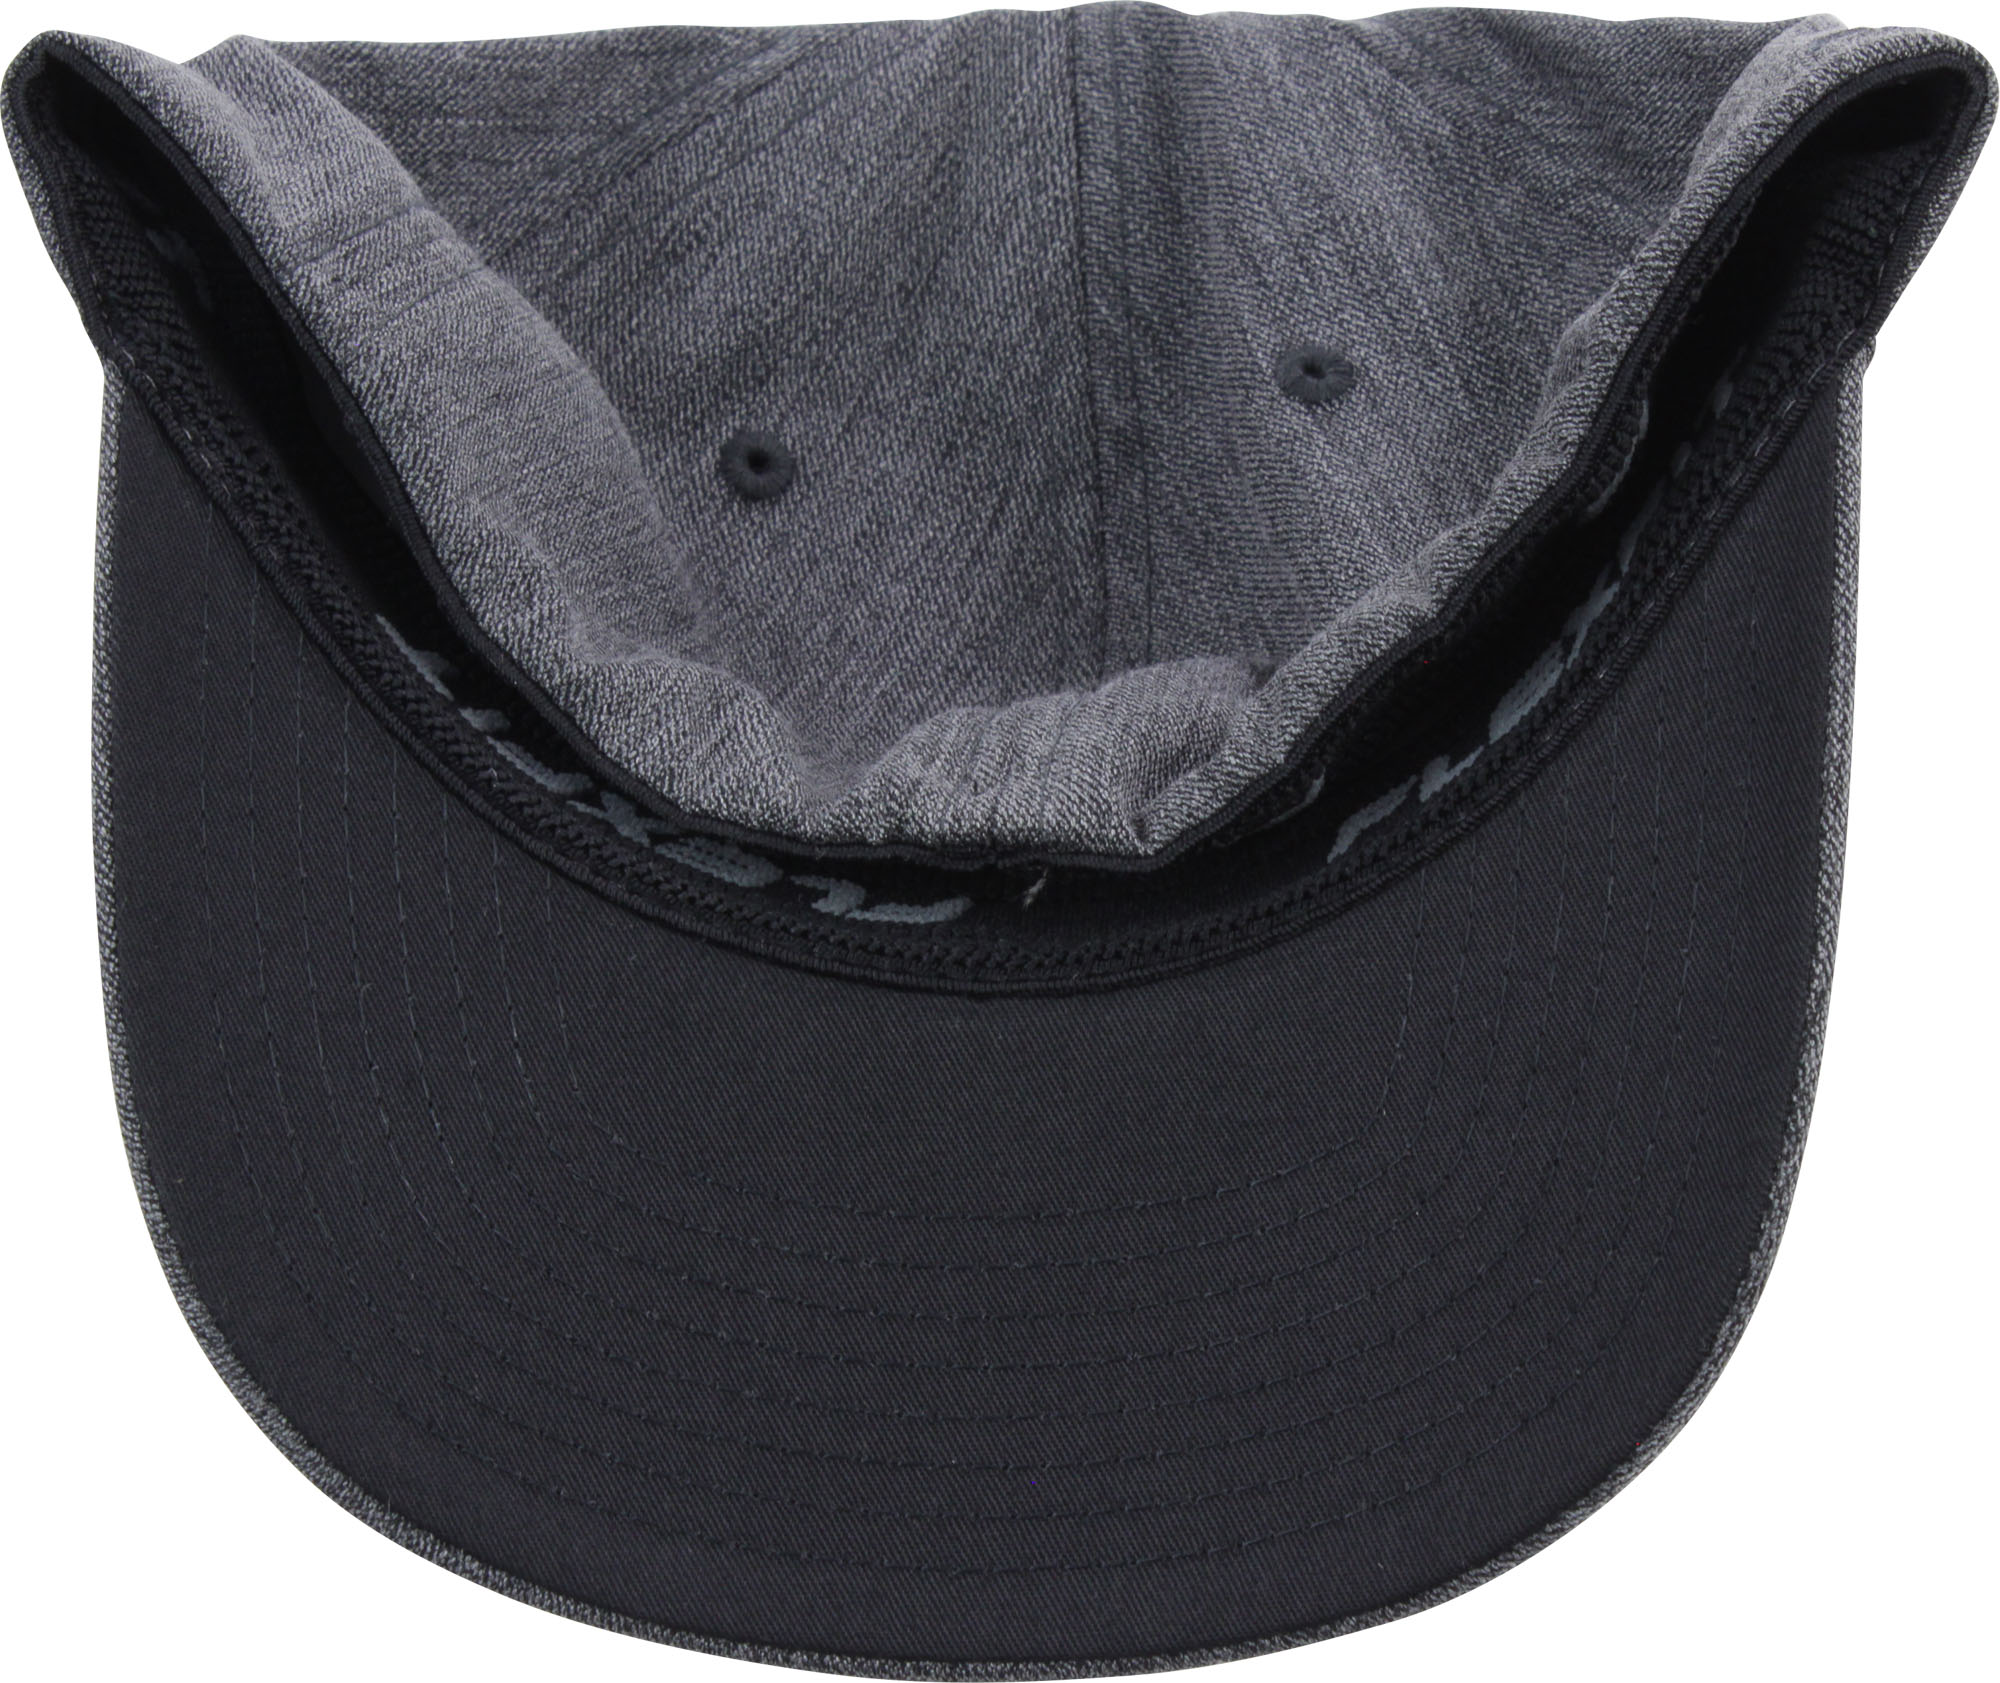 best website 87292 13aec Quiksilver - Quiksilver Mens Sidestay Flexfit Snapback Hat - Black Heather  - L XL - Walmart.com